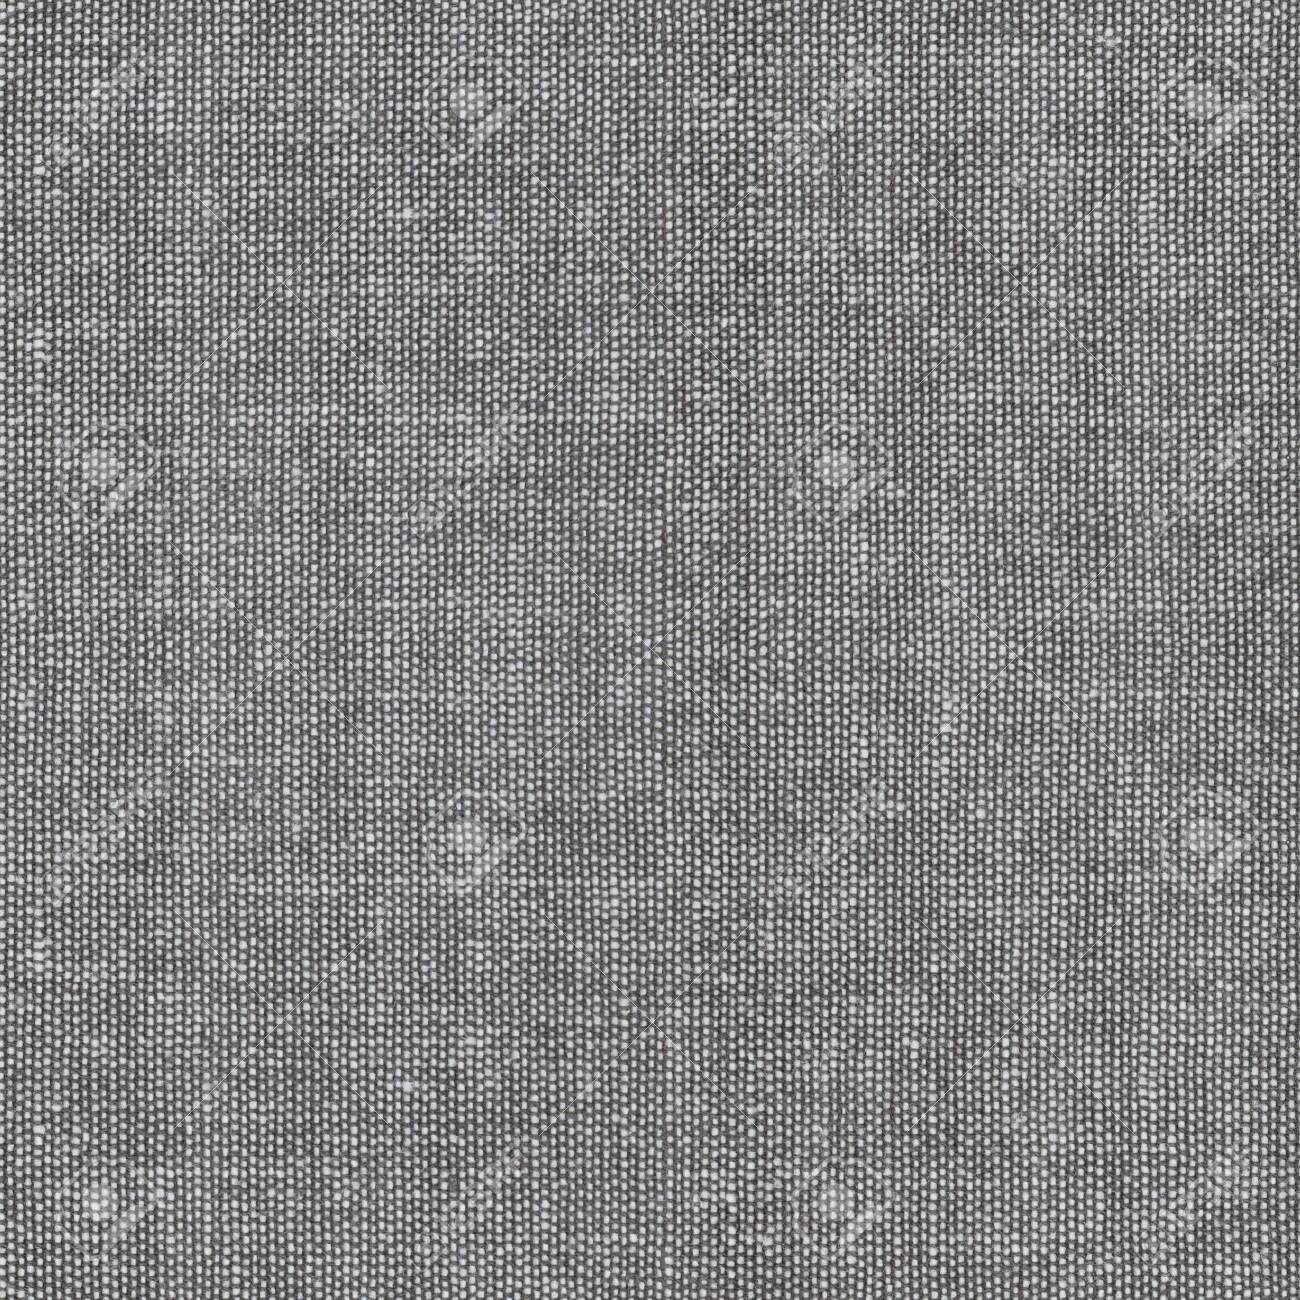 gray seamless, tileable fabric background texture - 129960394